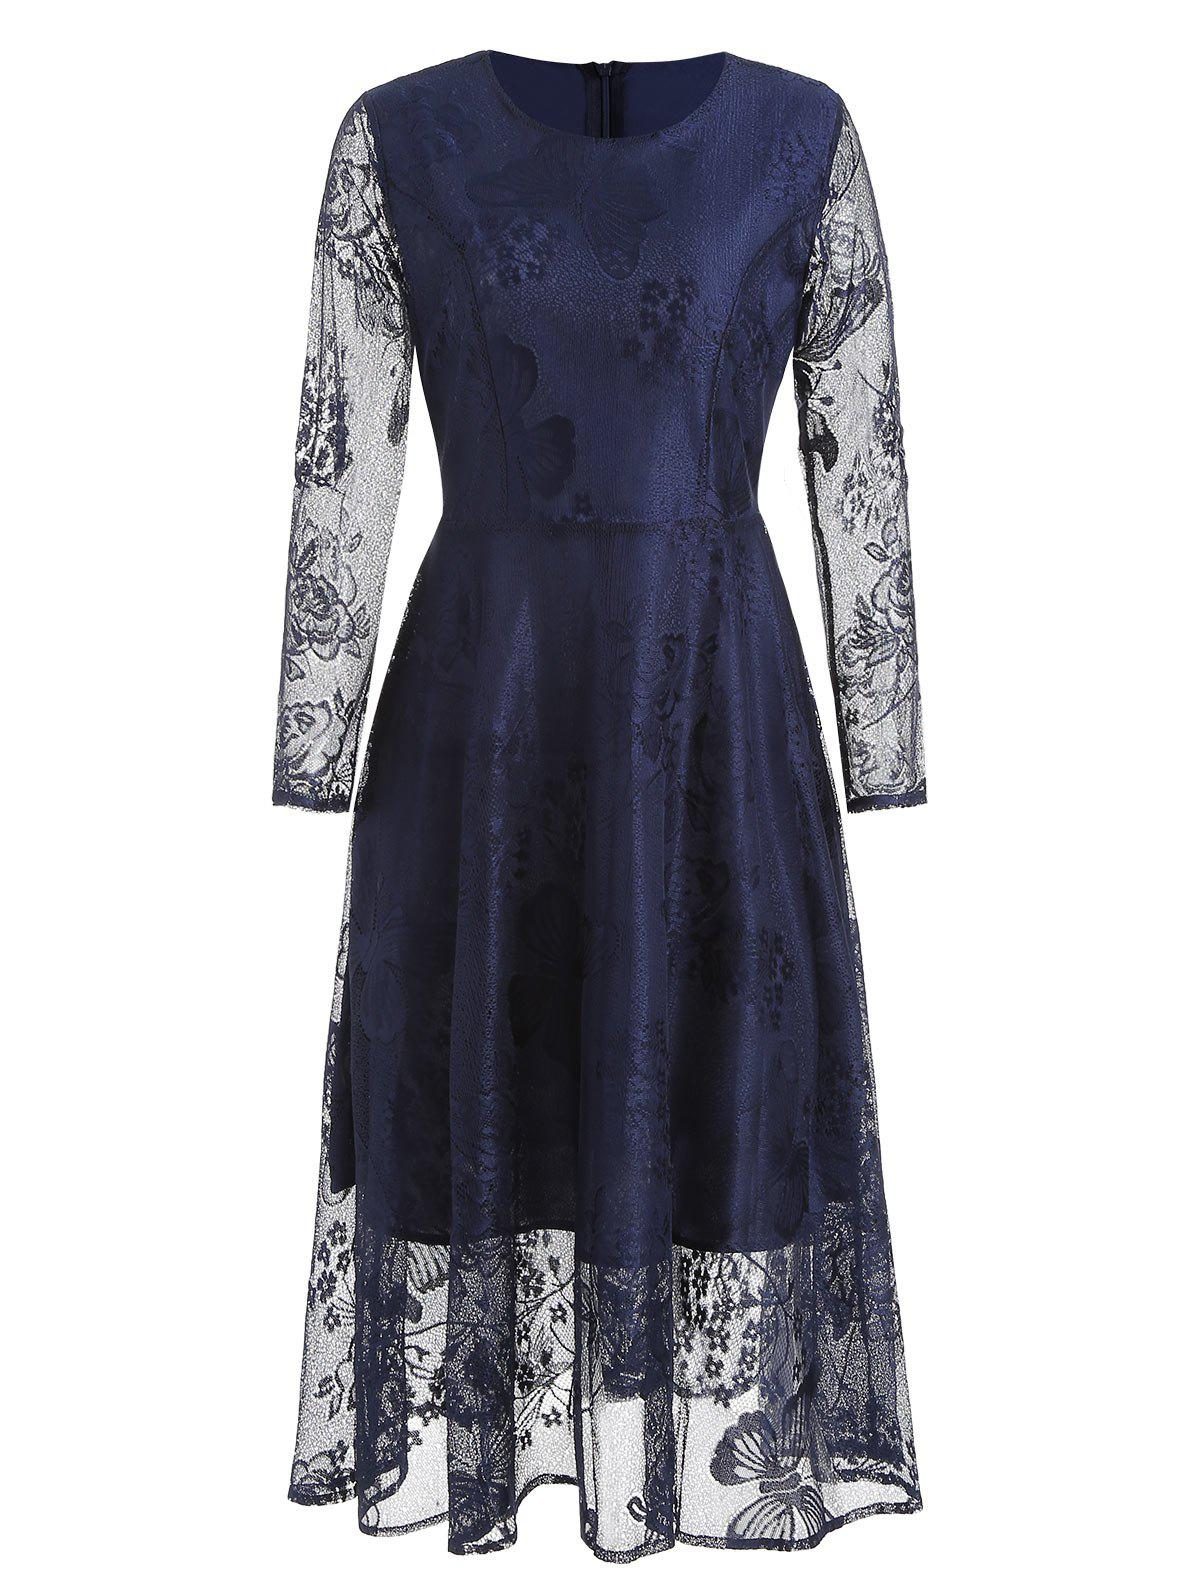 Unique Butterfly Lace Long Sleeve Flare Dress